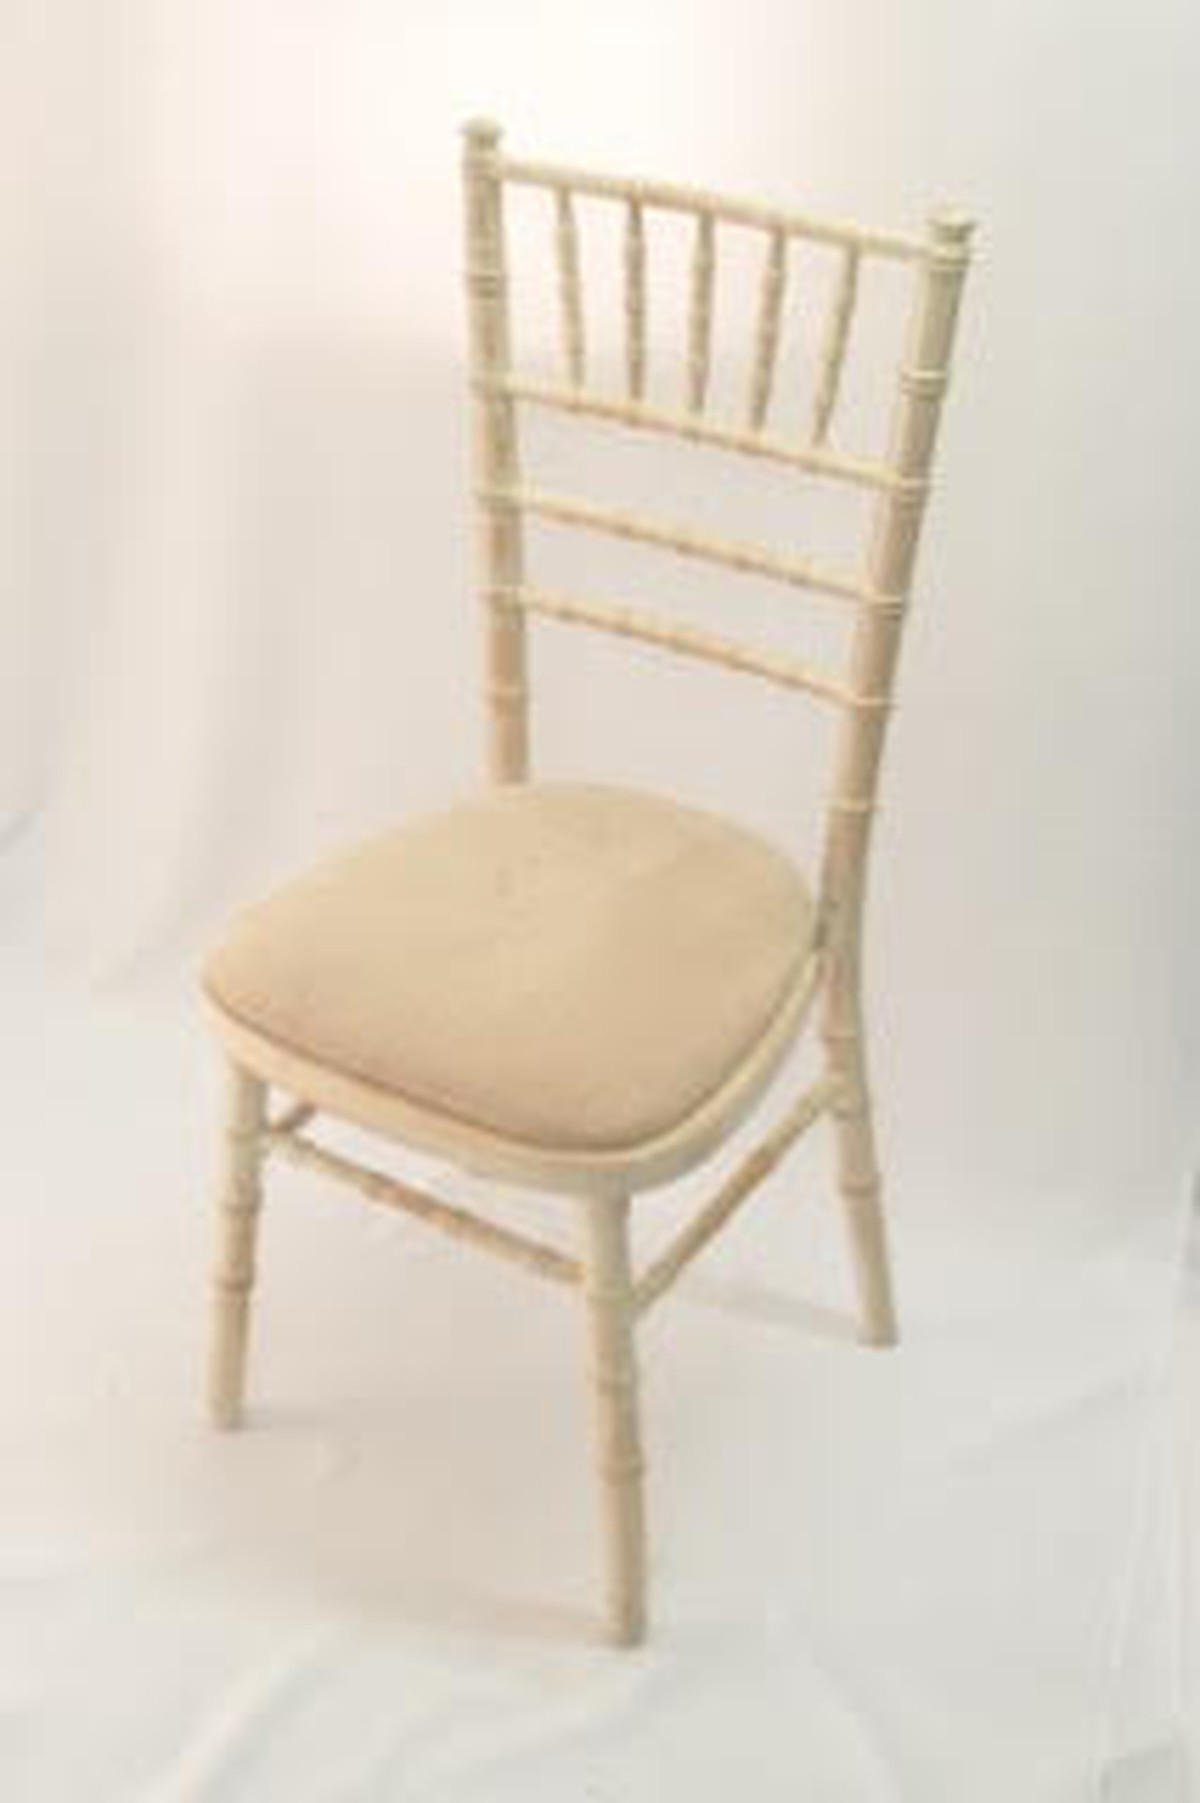 Ex hire limewash chivaris 20 ex hire limewash chivari chairs